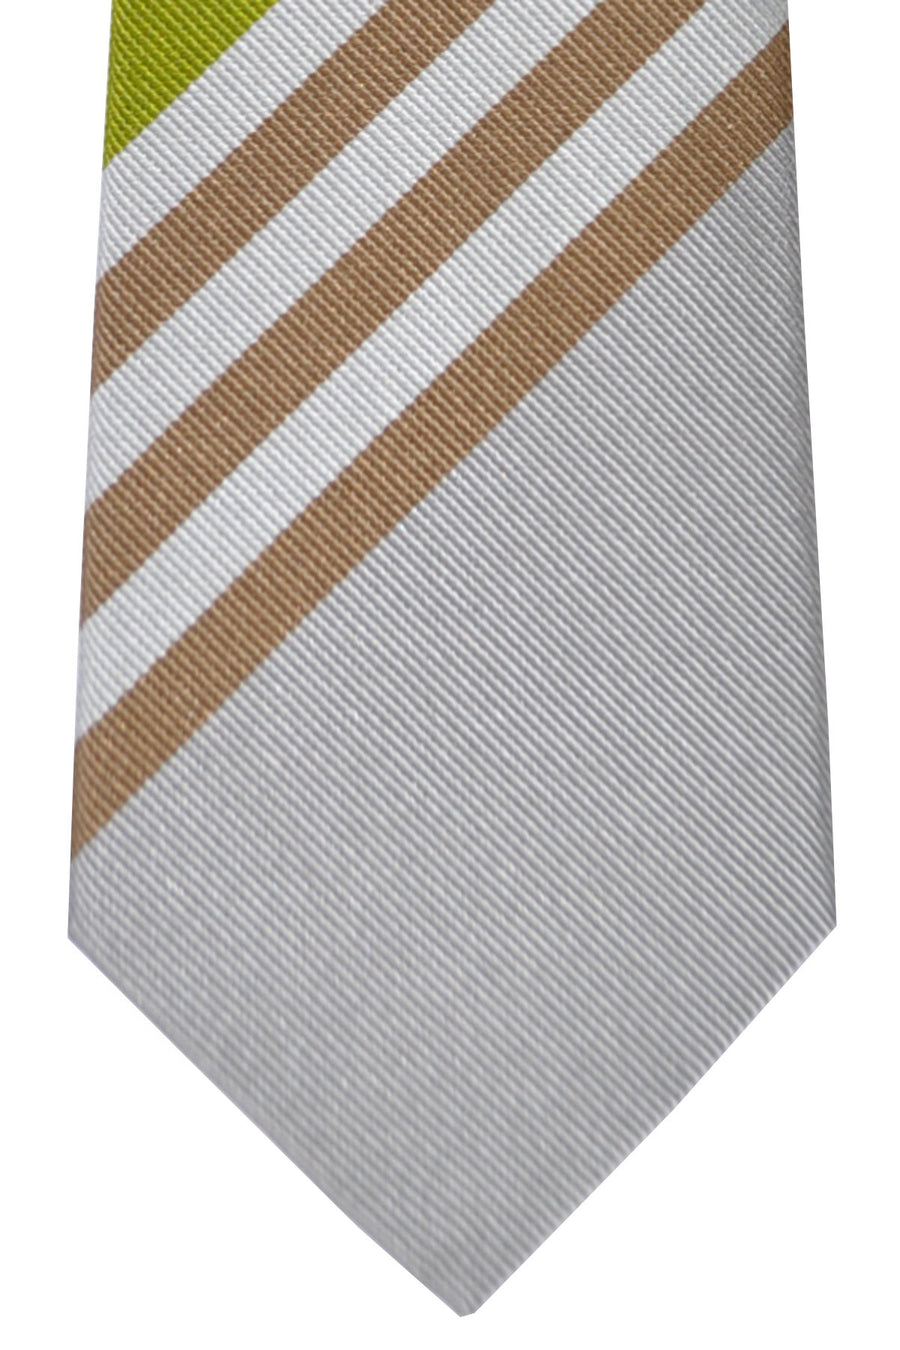 Gene Meyer Tie Silver Lime Stripes